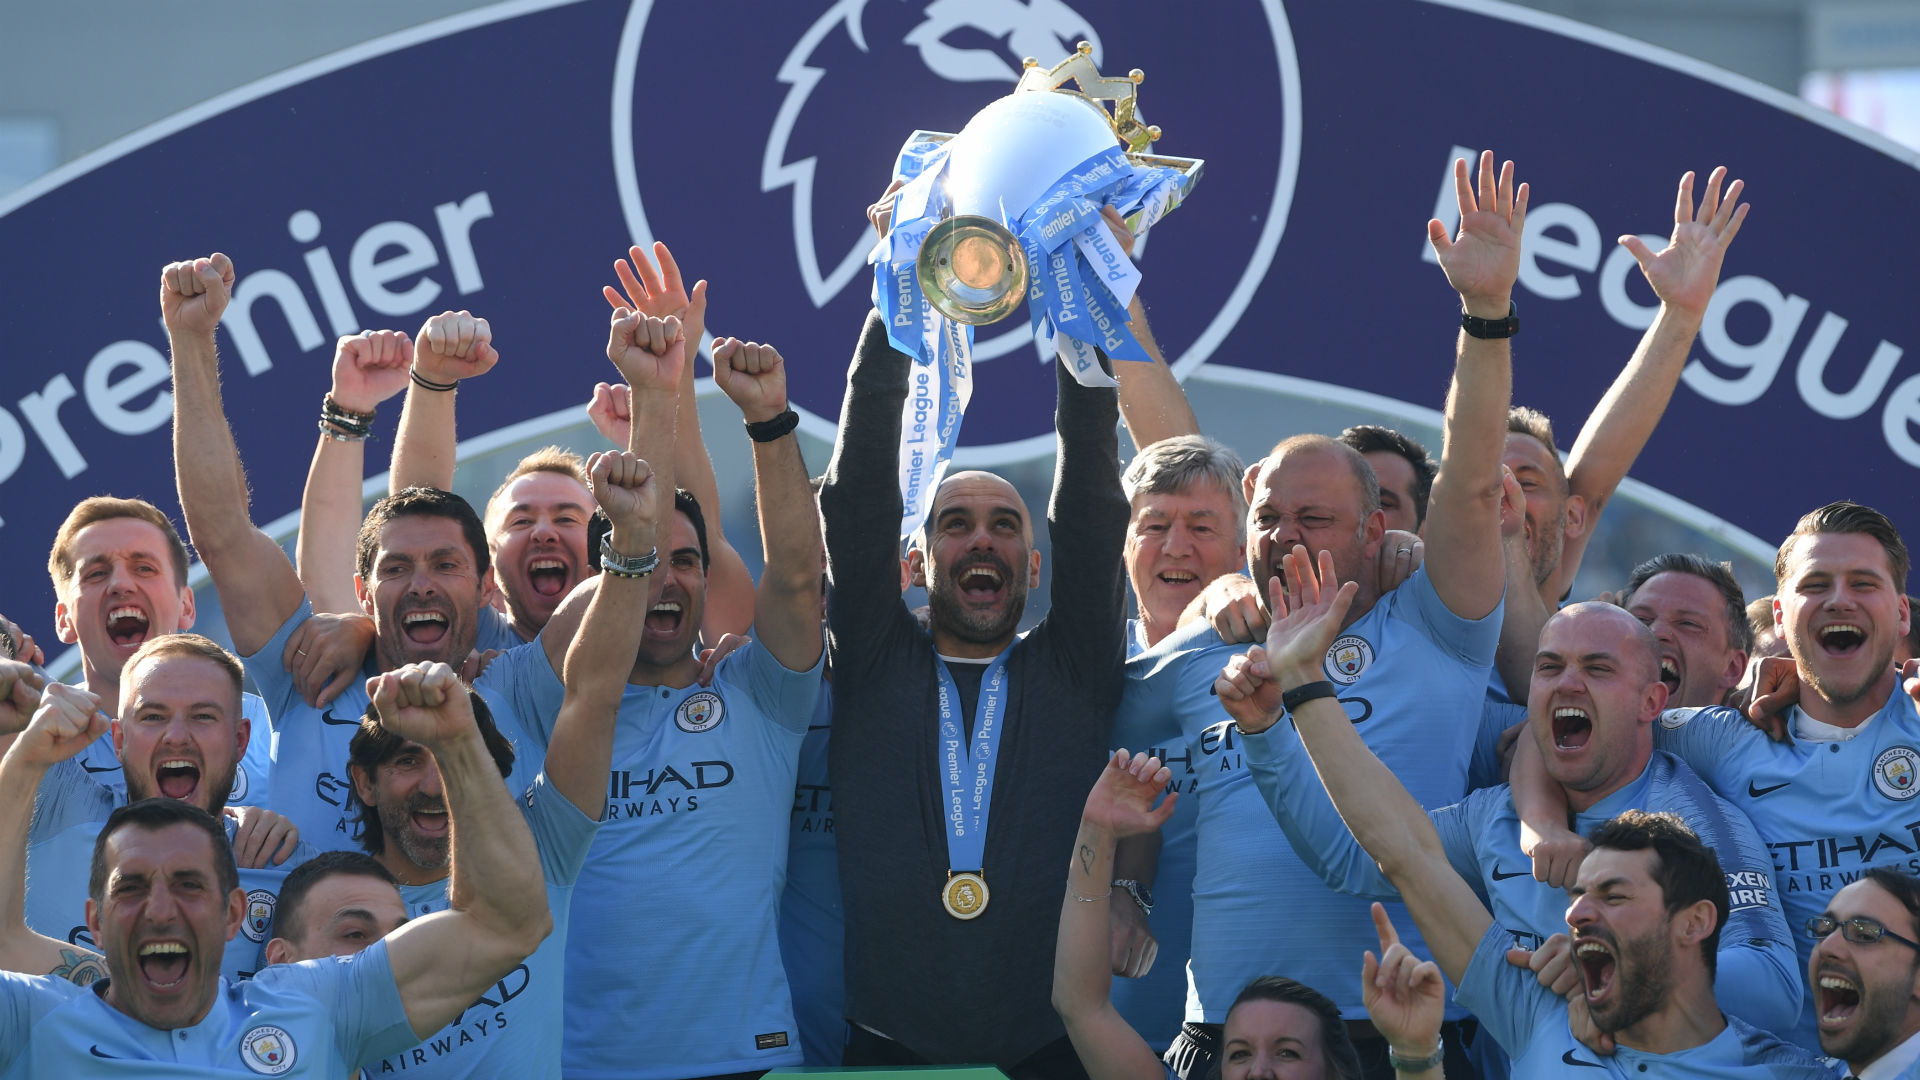 Guardiola celebrates toughest title after City see off Liverpool